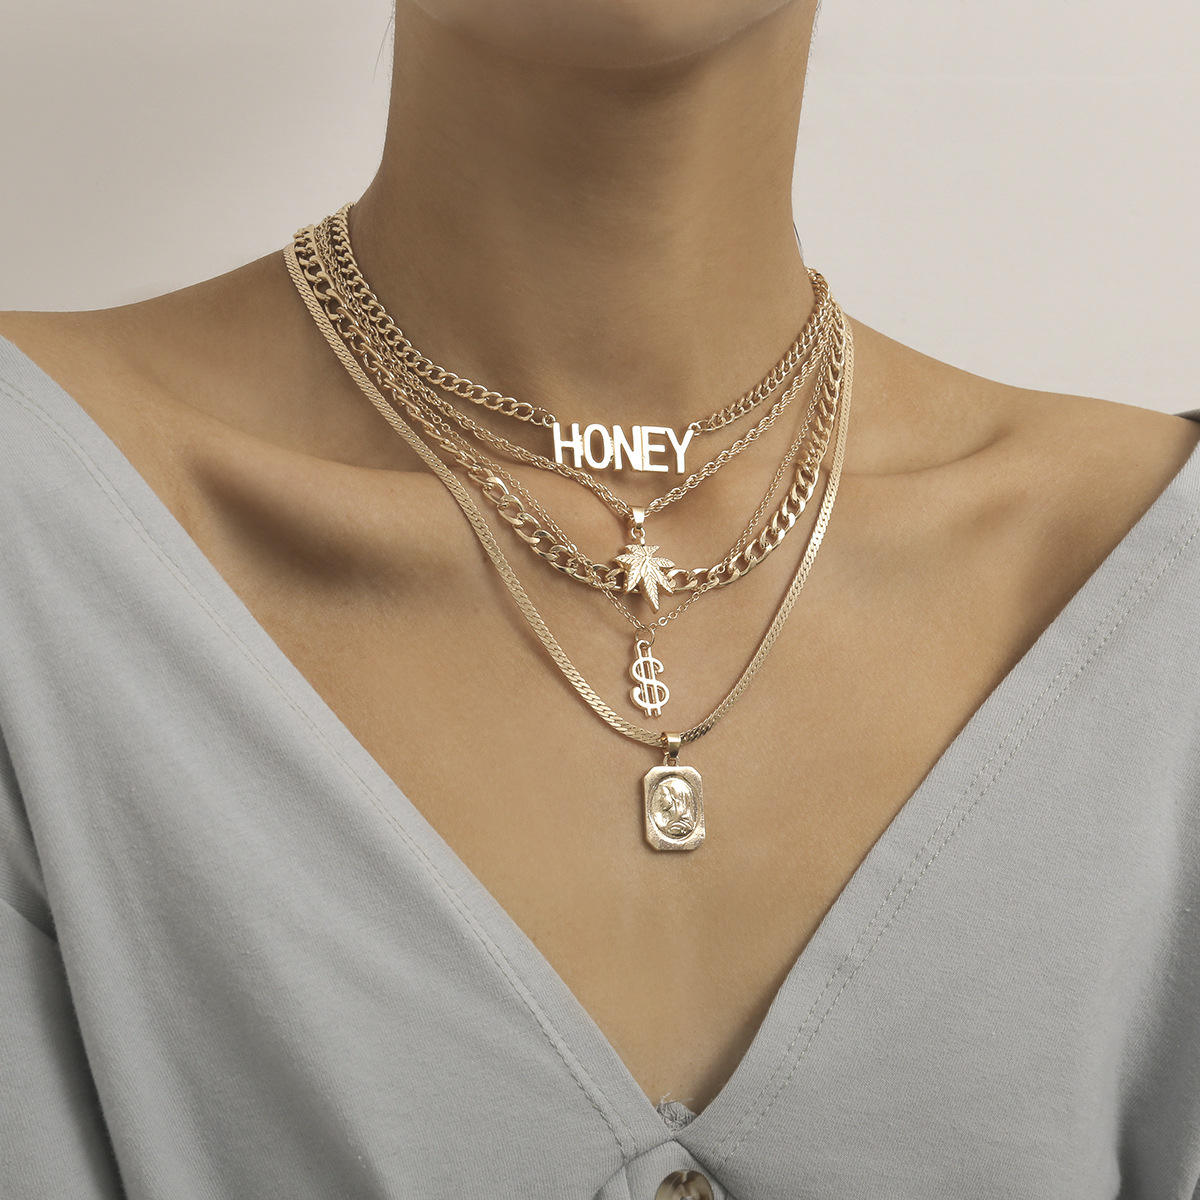 Hot New Multilayer Necklace Set Simple HONEY Alphabet Creative Chain Gold Necklace Personalized Metal Beauty Coin Necklace